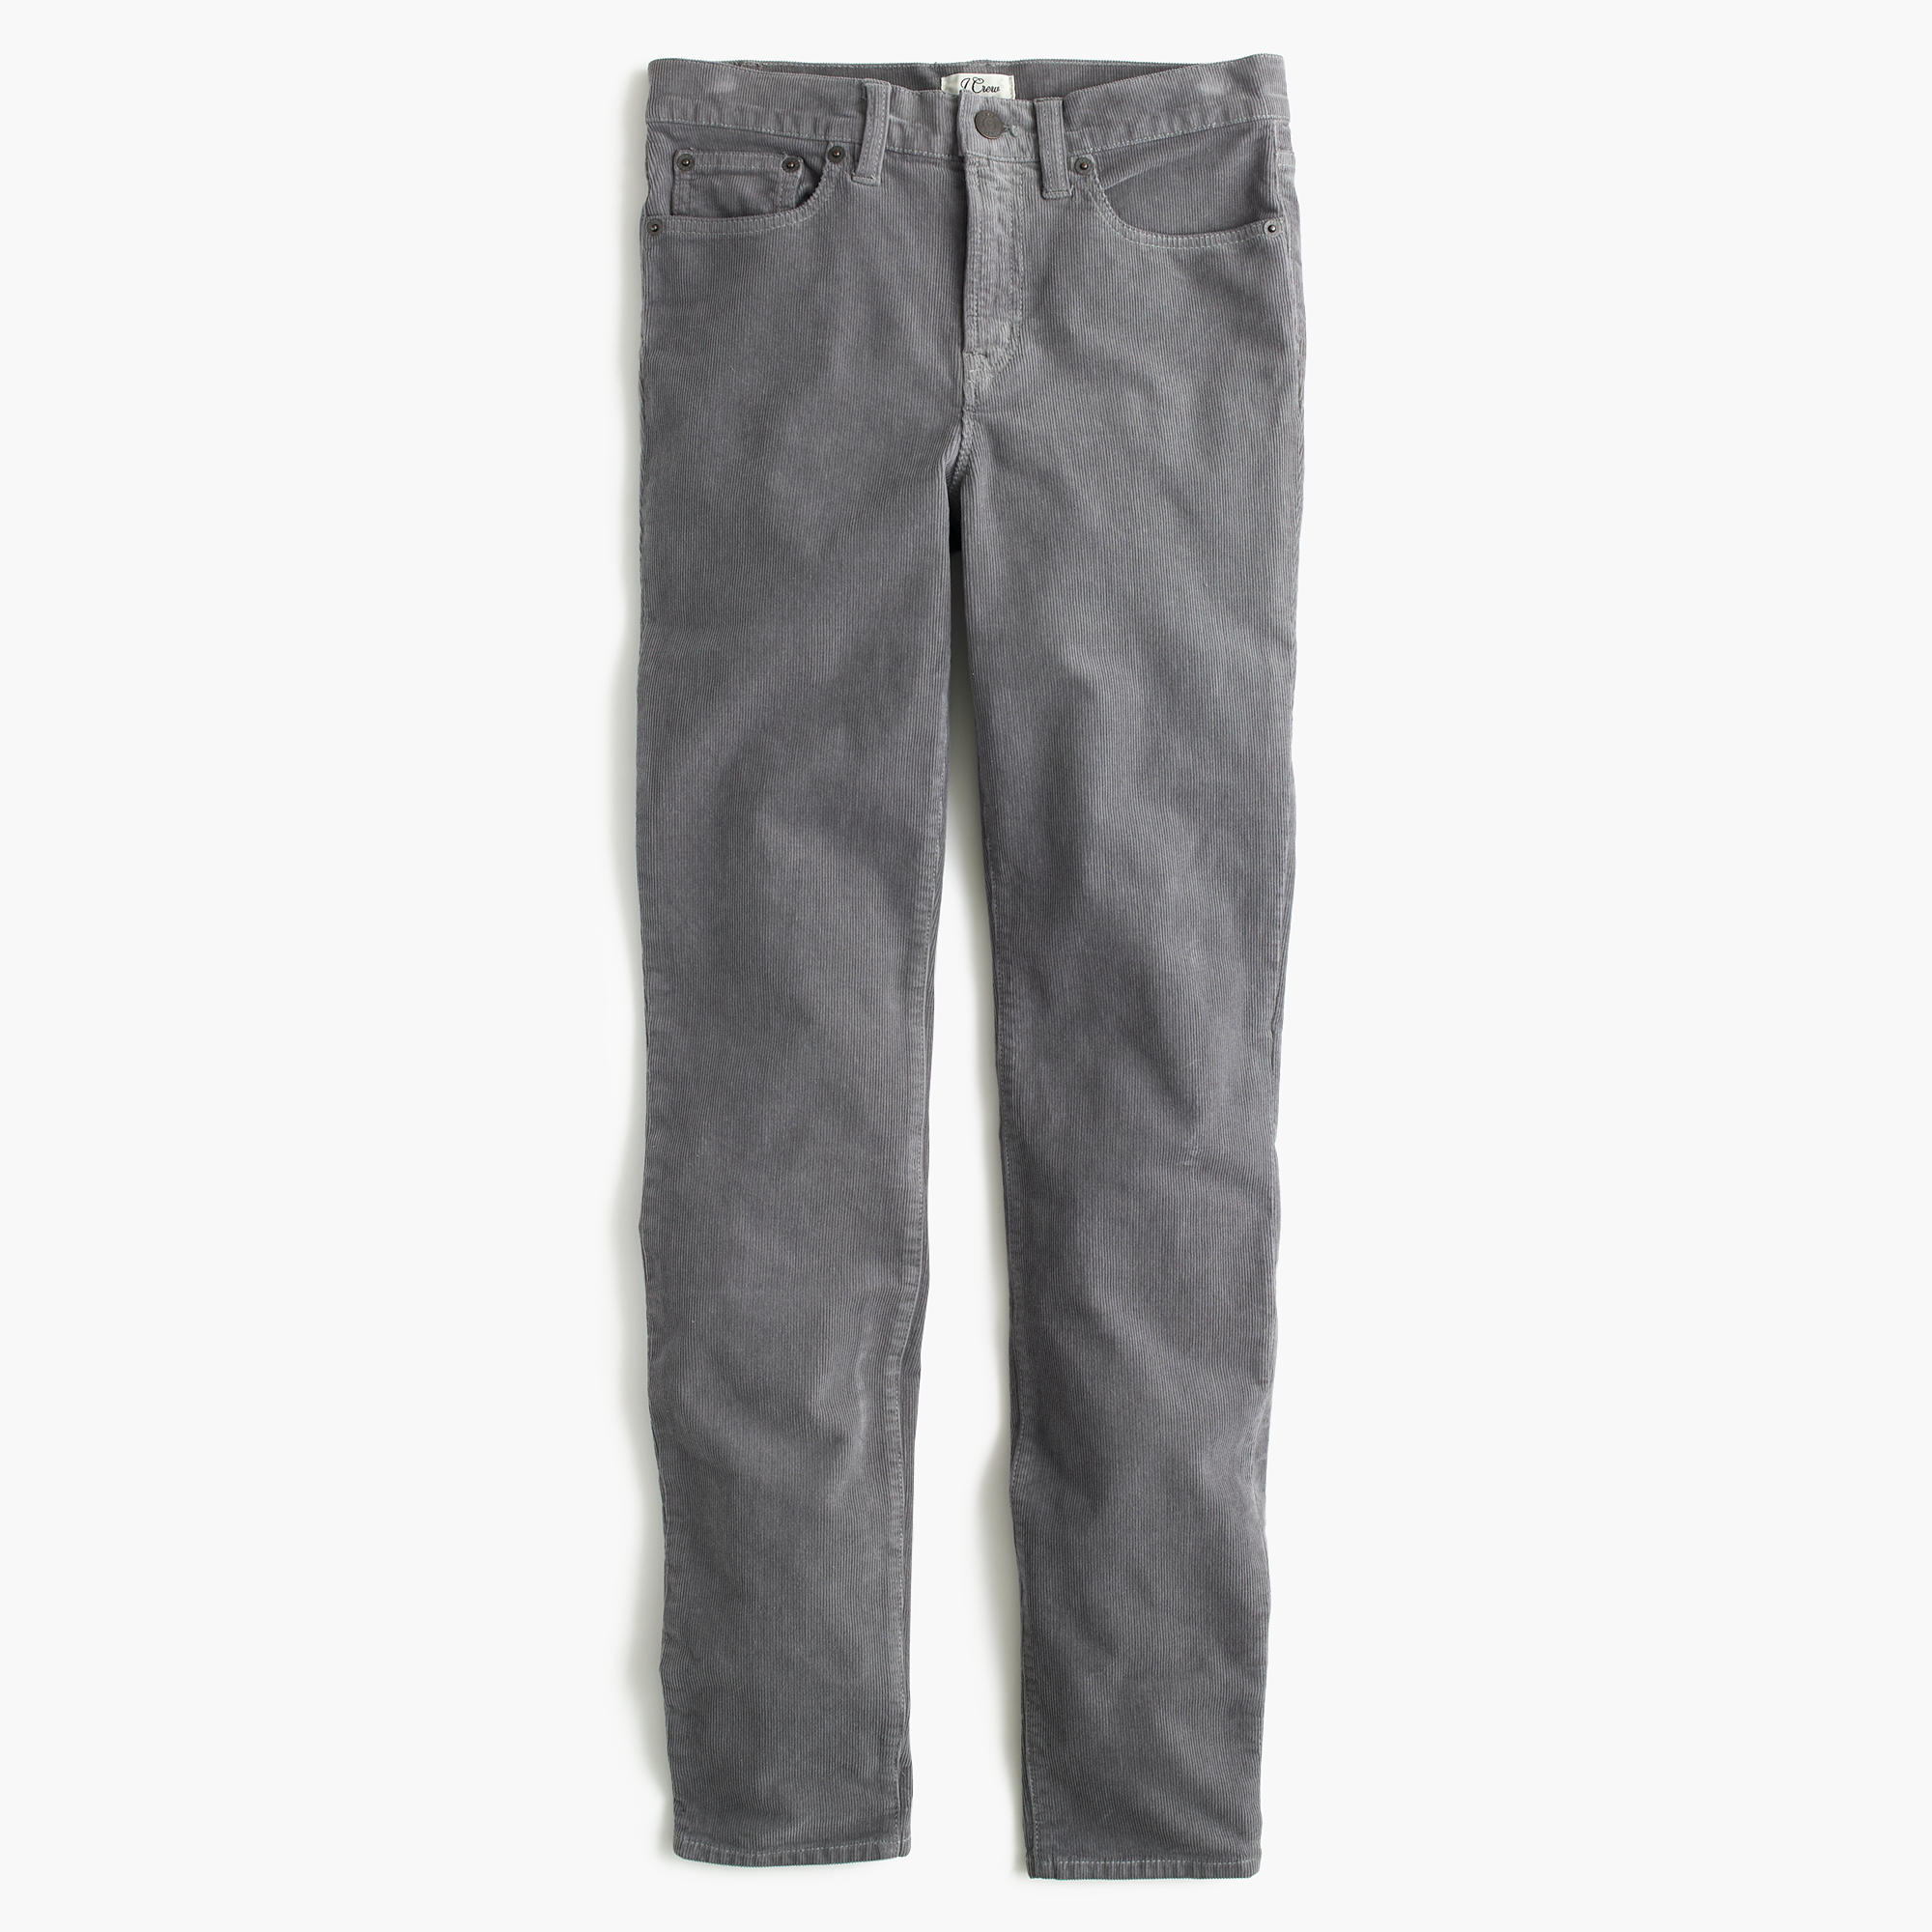 cord women Shop for womens corduroy pants online at target free shipping on purchases over $35 and save 5% every day with your target redcard.